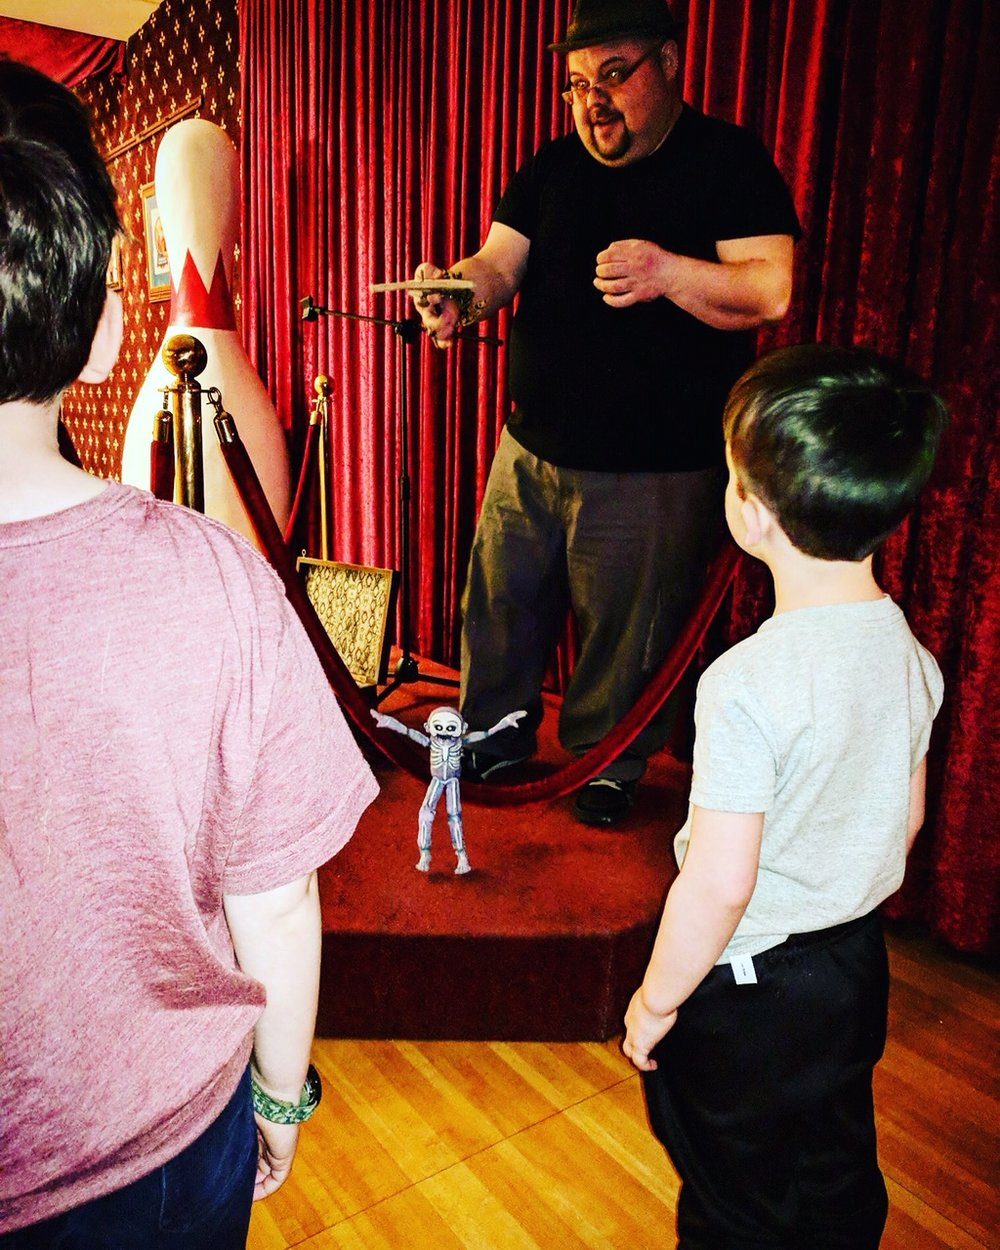 Party Music Puppet DJ - For a few months Dave played party tunes and made puppets dance for bowling families at Arsenal Bowl in Lawrenceville. That turned into a really fun time! He is available to Puppet DJ parties!